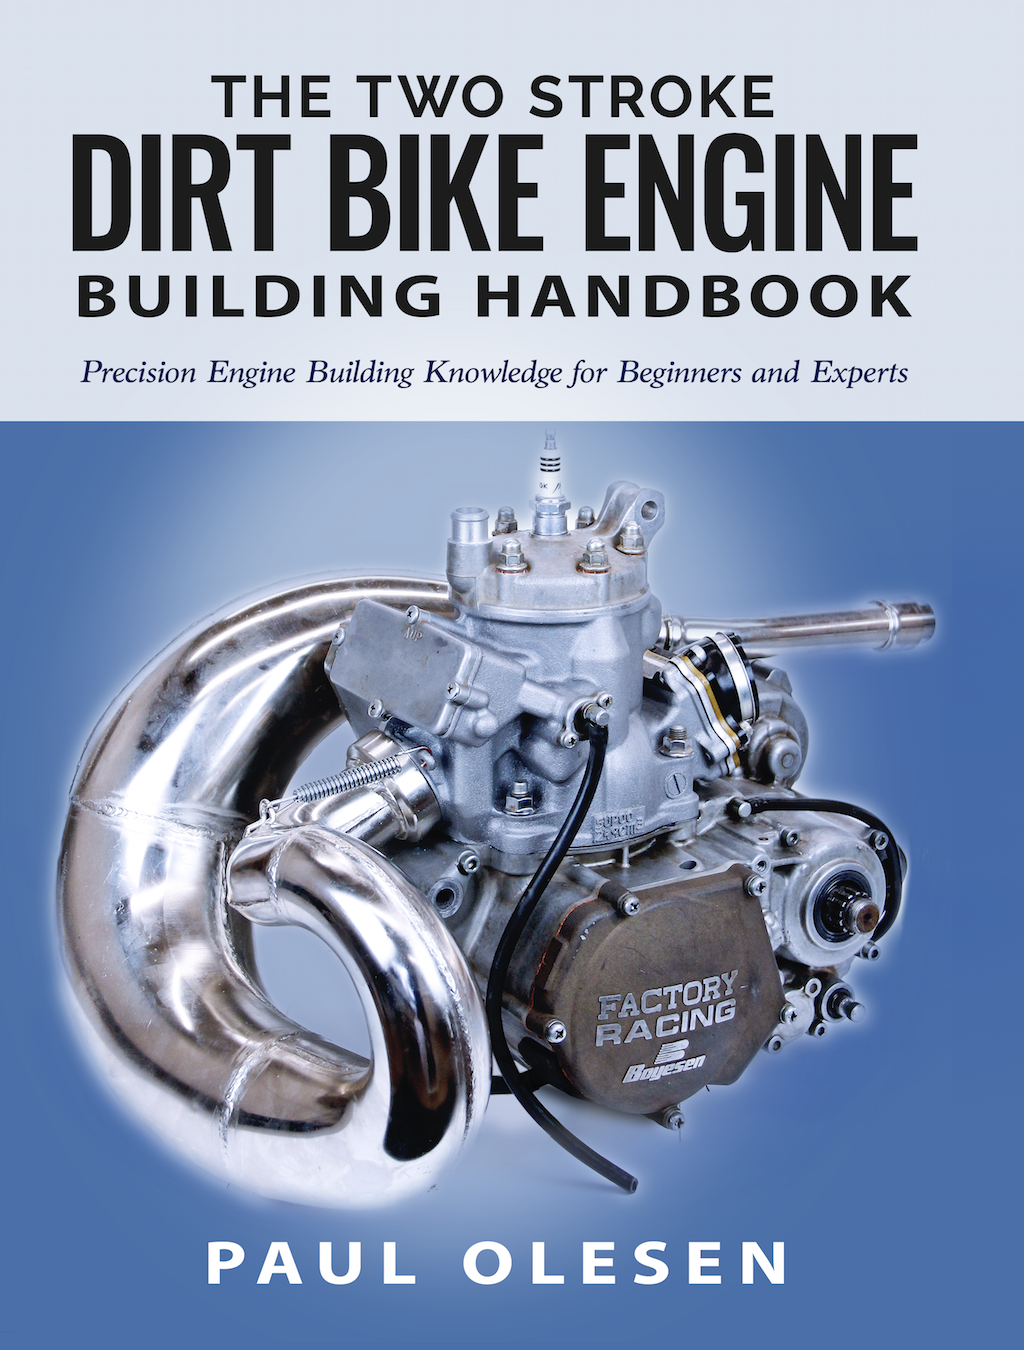 The Two Stroke Dirt Bike Engine Building Handbook - DIY Moto Fix